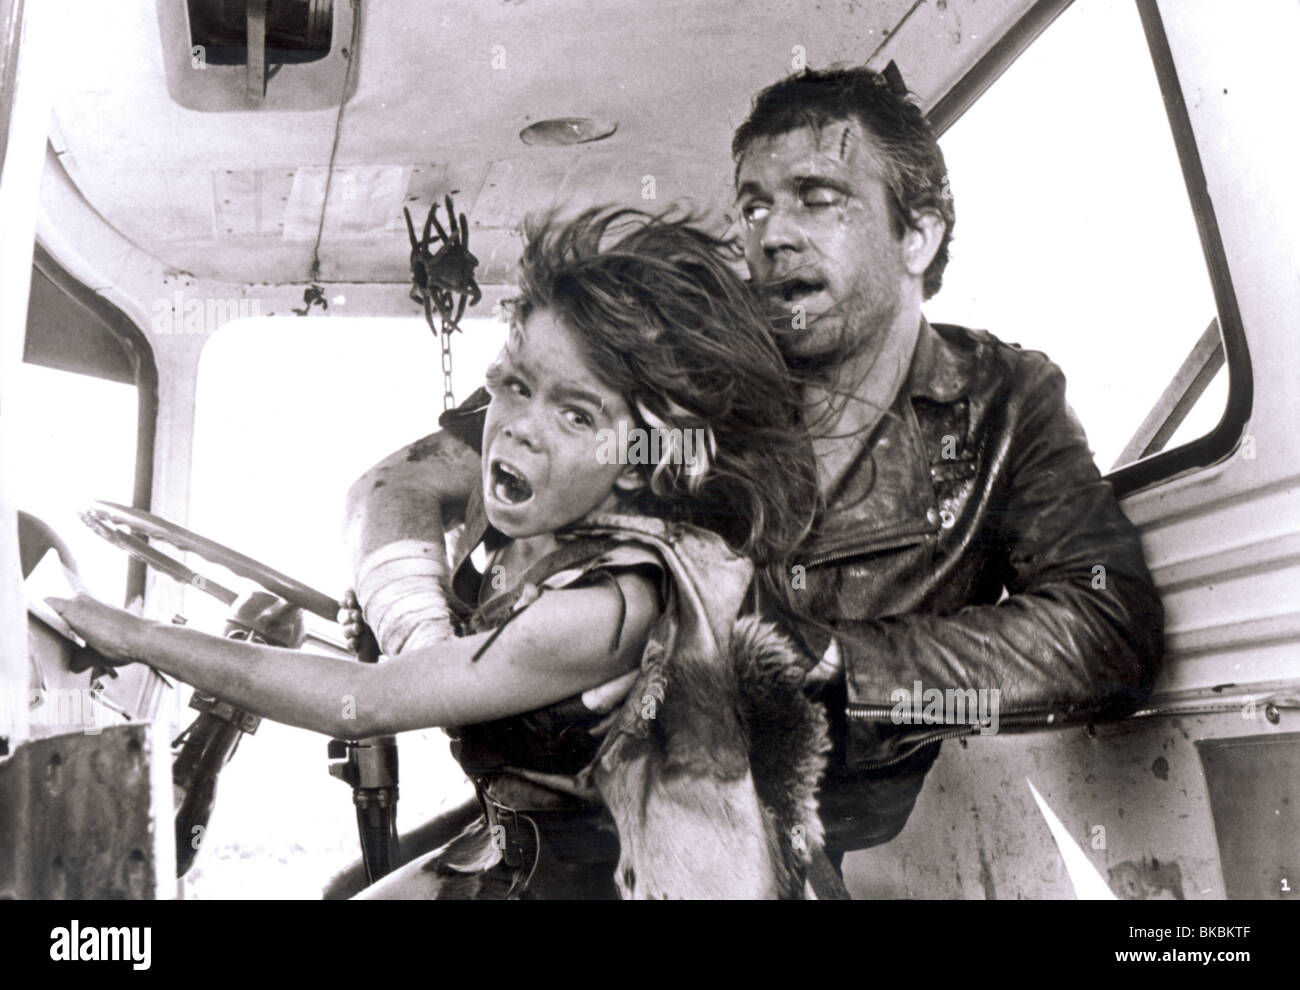 MAD MAX 2 : THE ROAD WARRIOR (1981) EMIL MINTY, MEL GIBSON MX2 003P - Stock Image